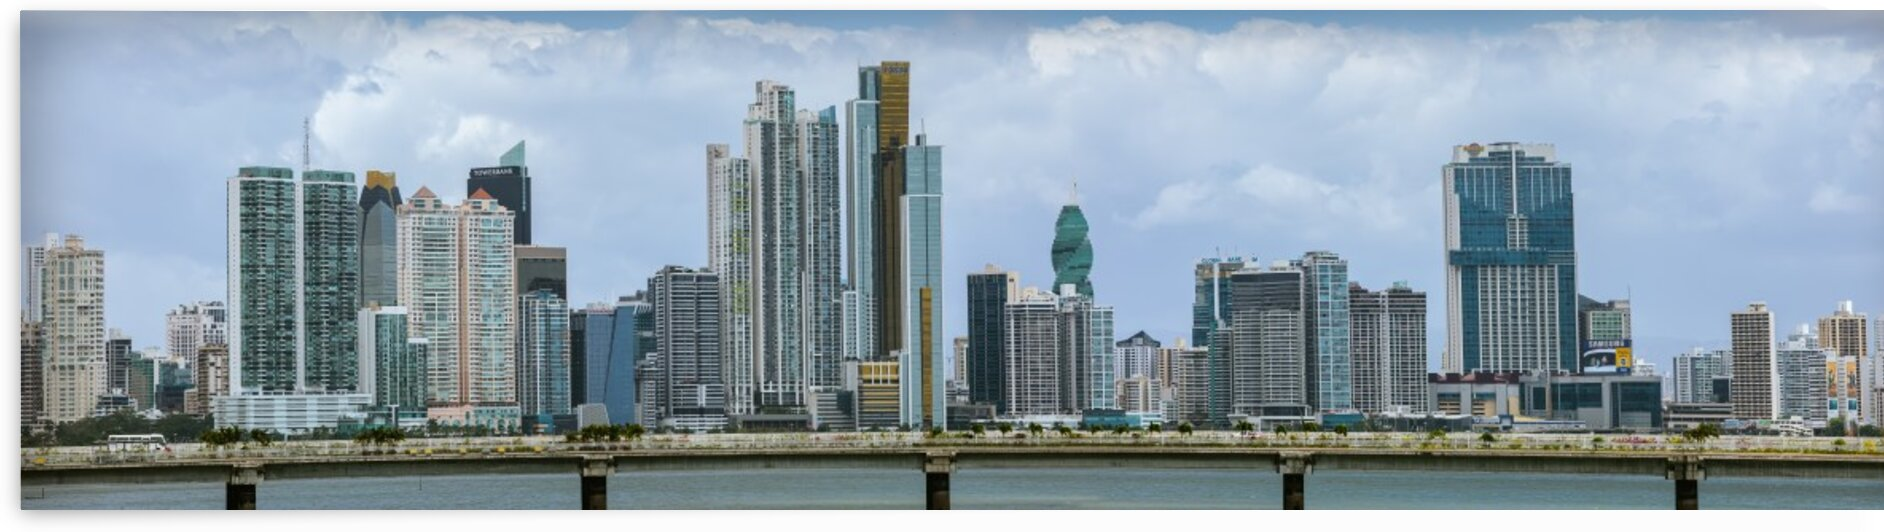 Panama City Panorama by Nicholas